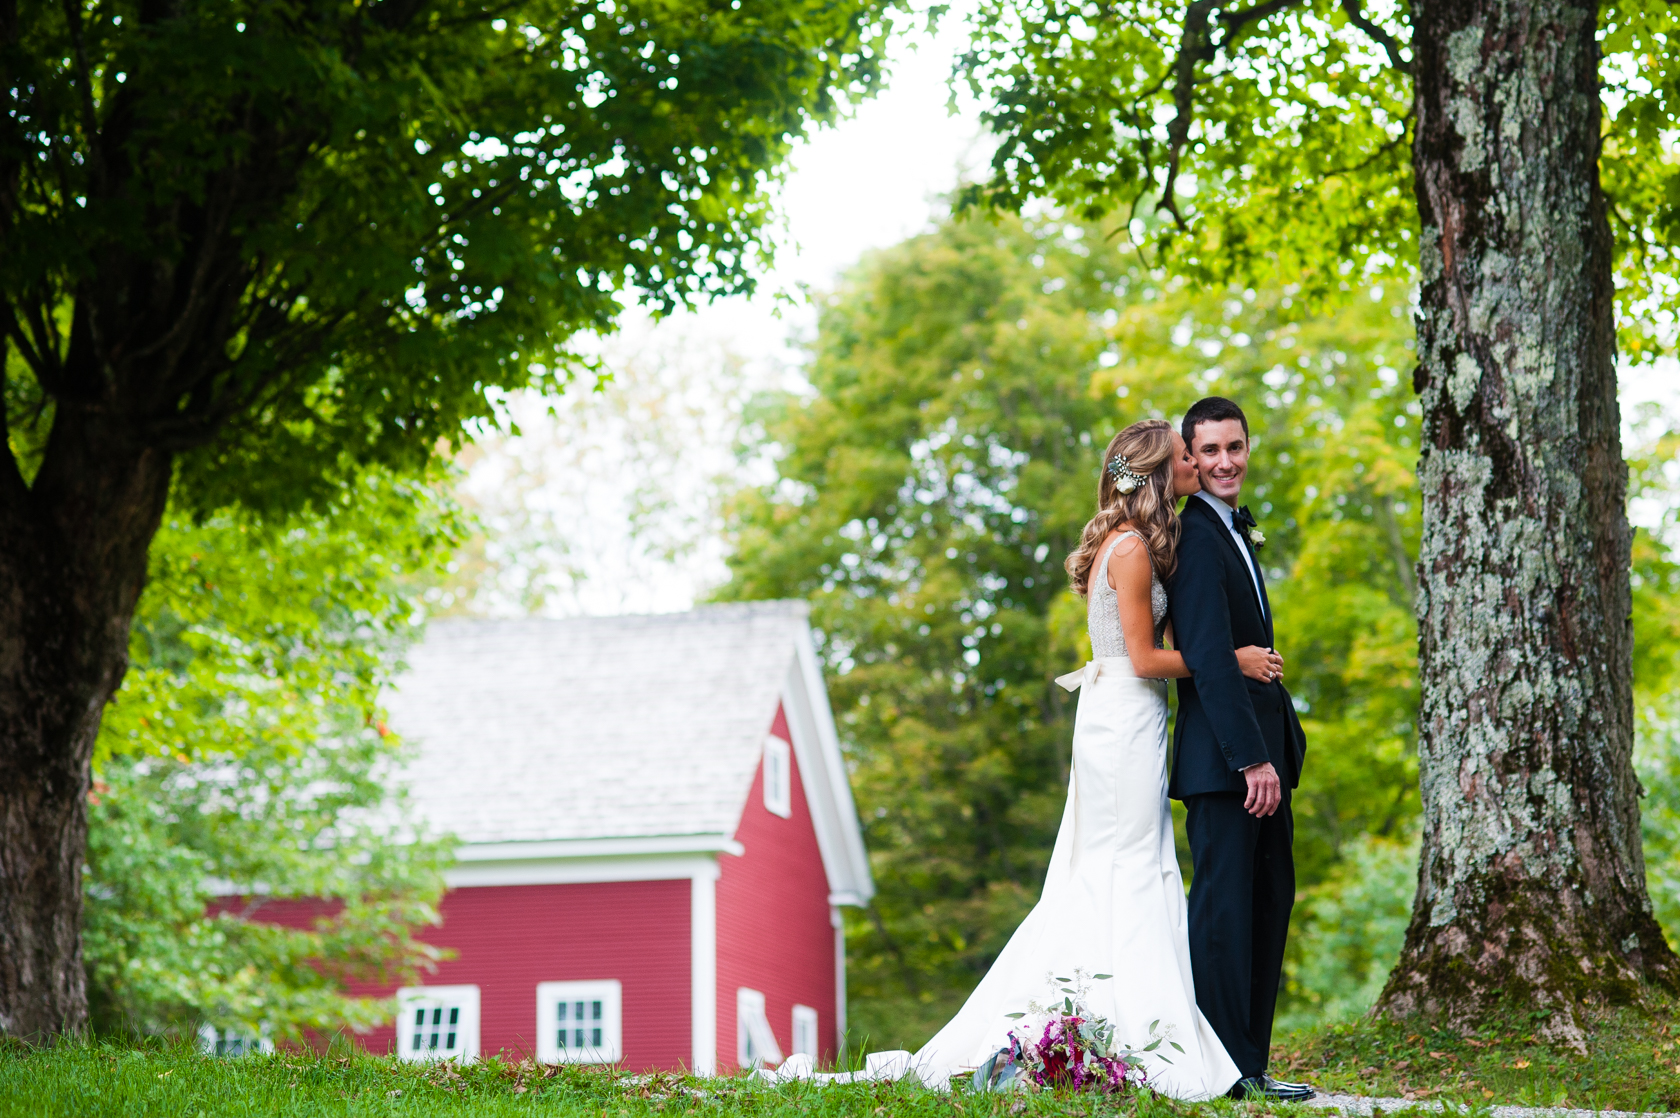 bride gives her new husband a kiss on the cheek during their gorgeous farm wedding